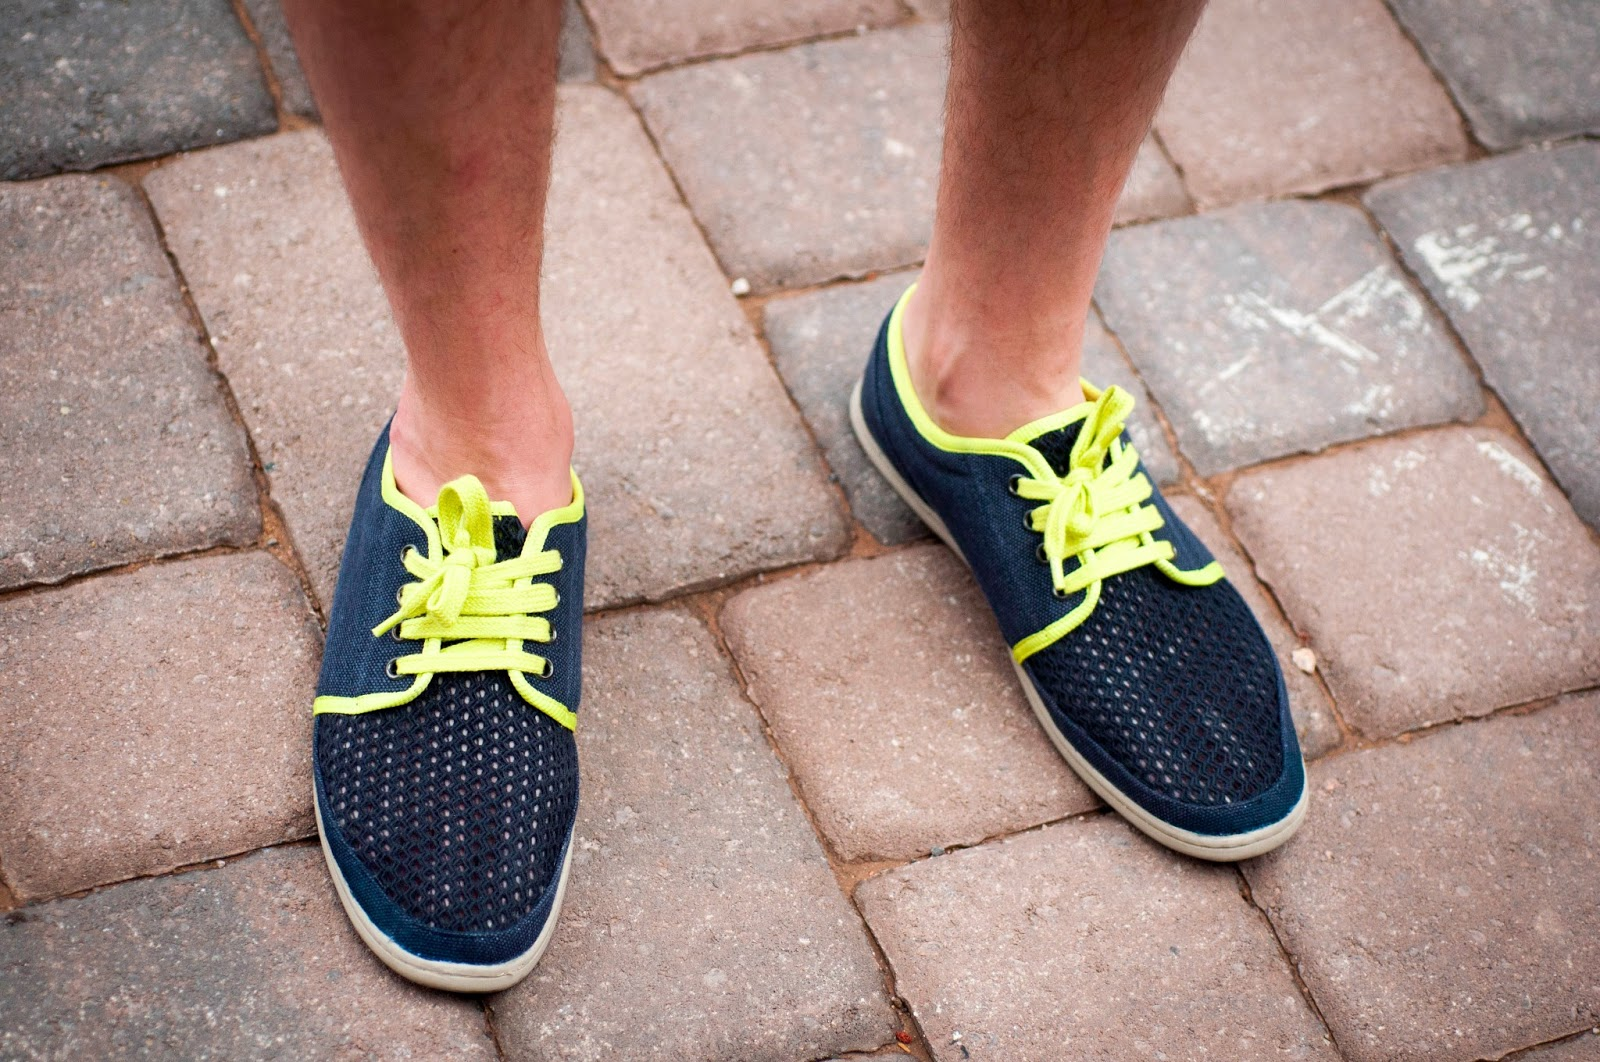 neon shoes, yellow laces, zara shoes, netting, mens style, mens fashion, mens style blog